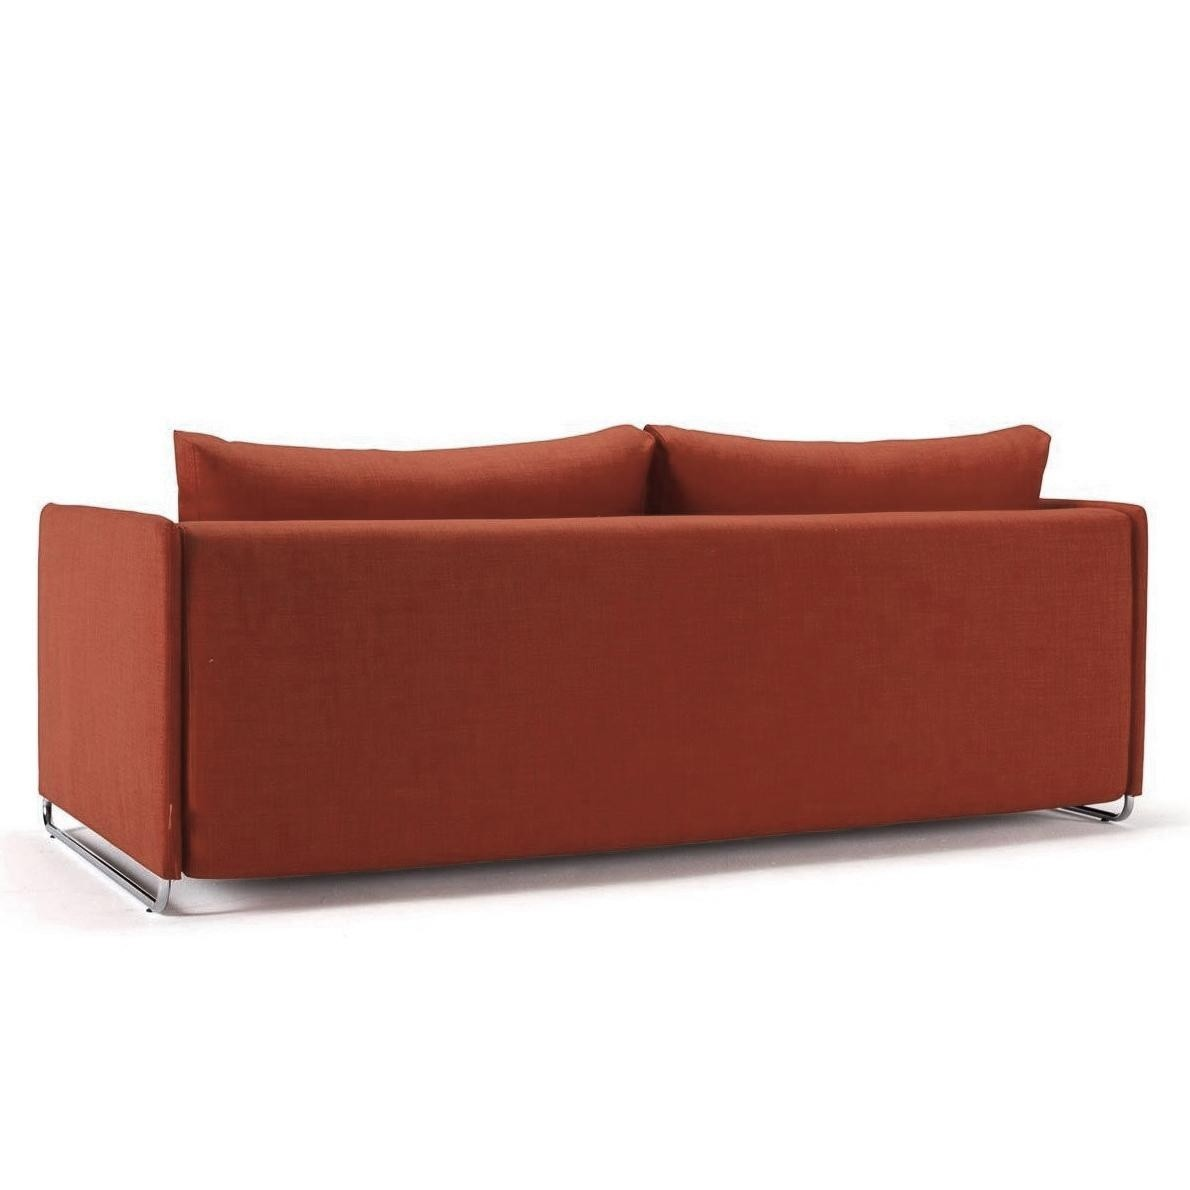 Upend Sofa Bed Innovation